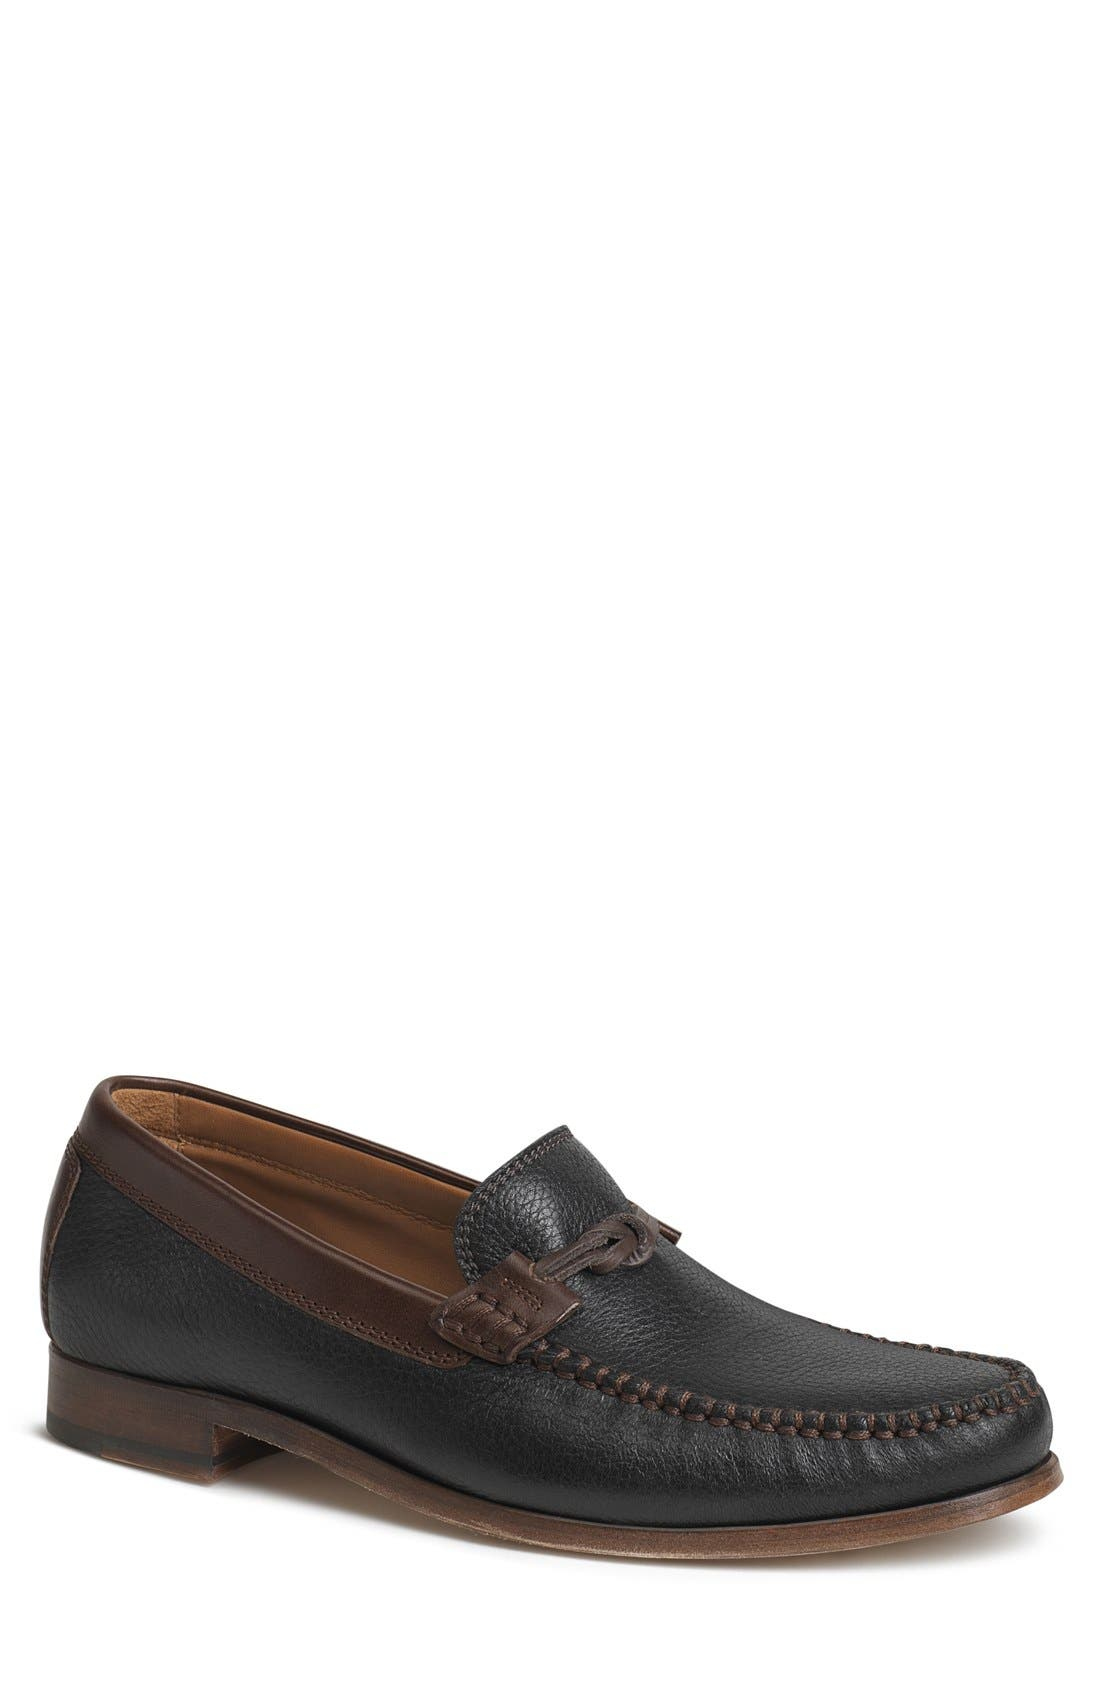 'Sawyer' Loafer,                         Main,                         color, Black